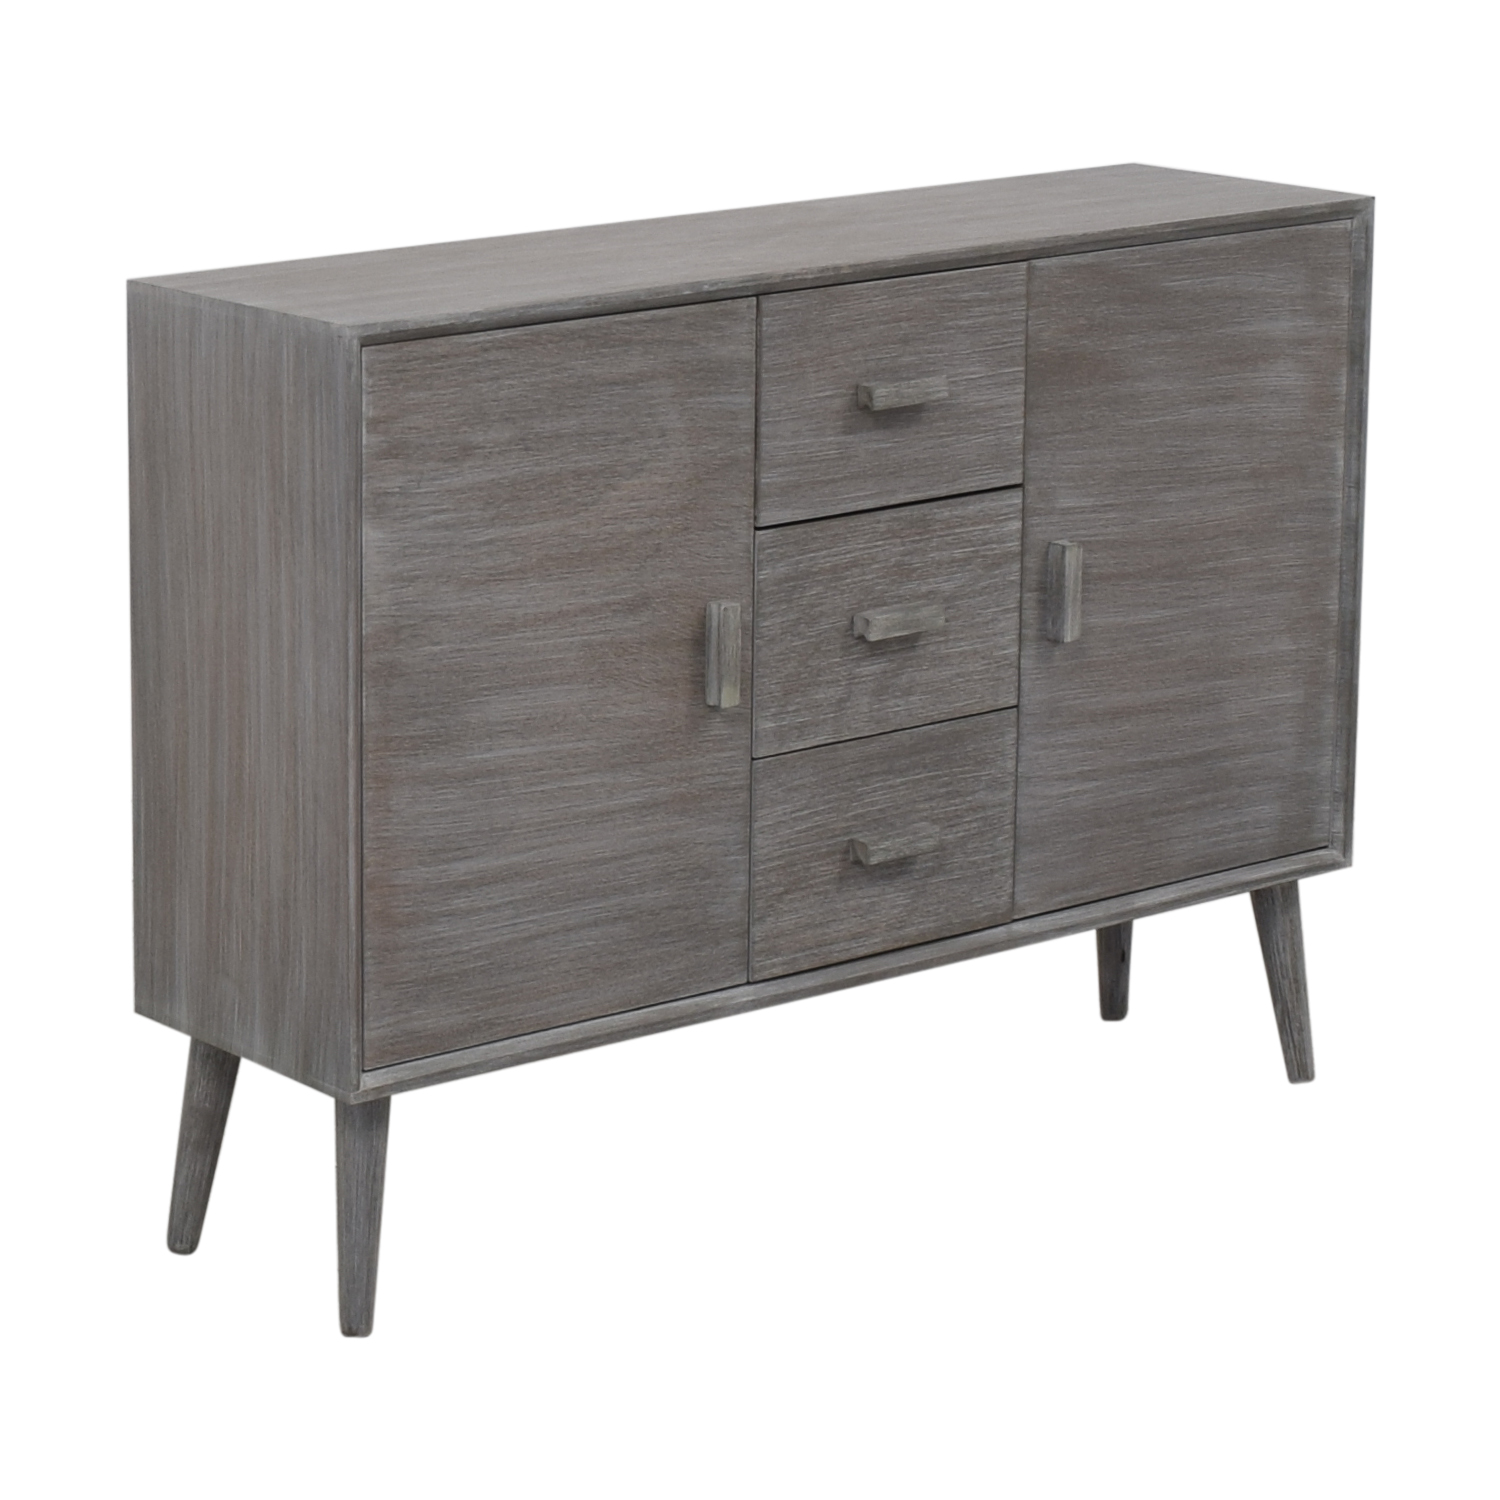 Grey Cabinet with Three Drawers used